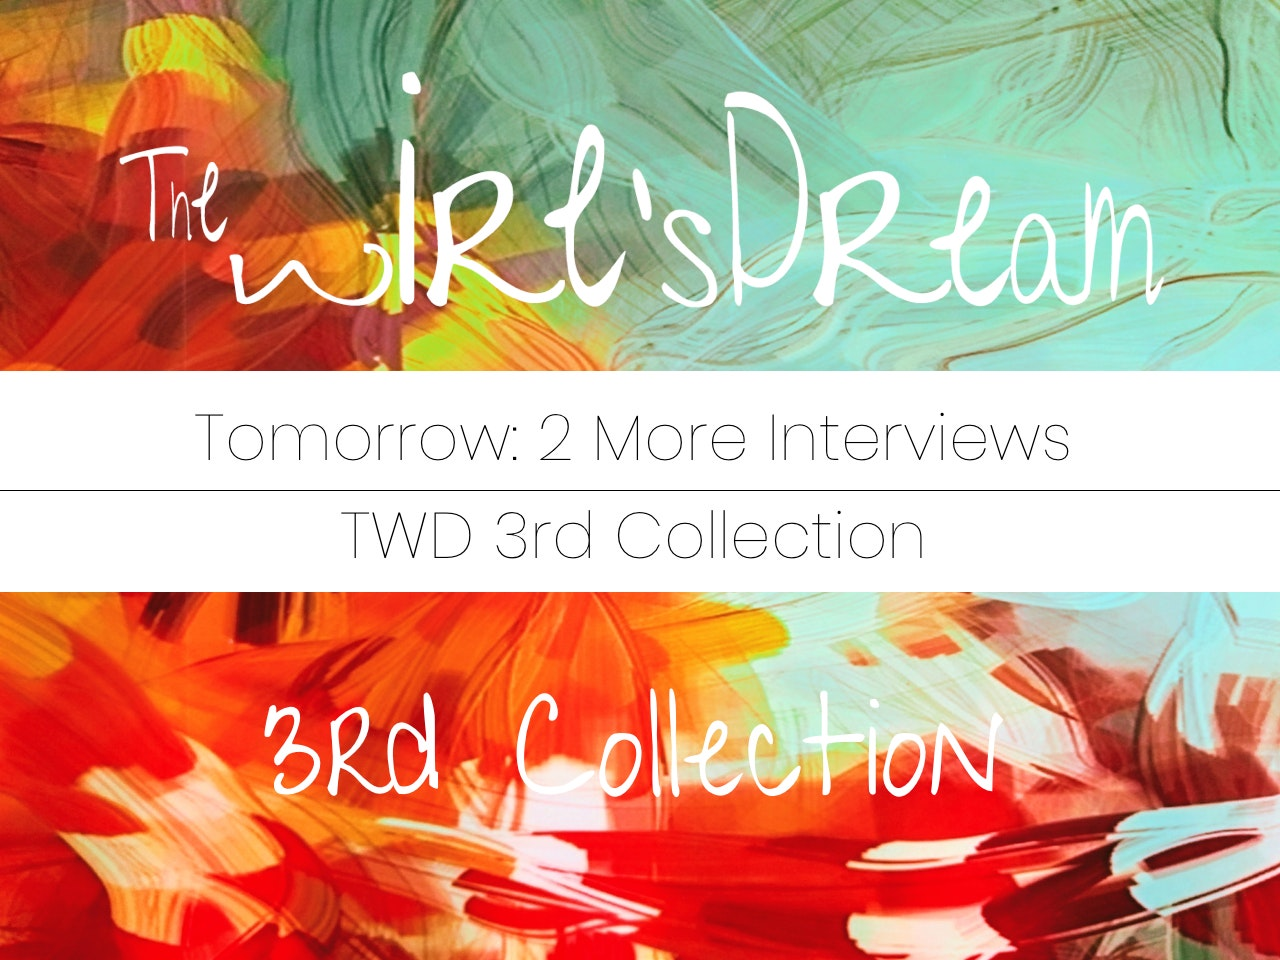 All! Tomorrow, 2 more interviews! #3rdCollection 🙃🤓